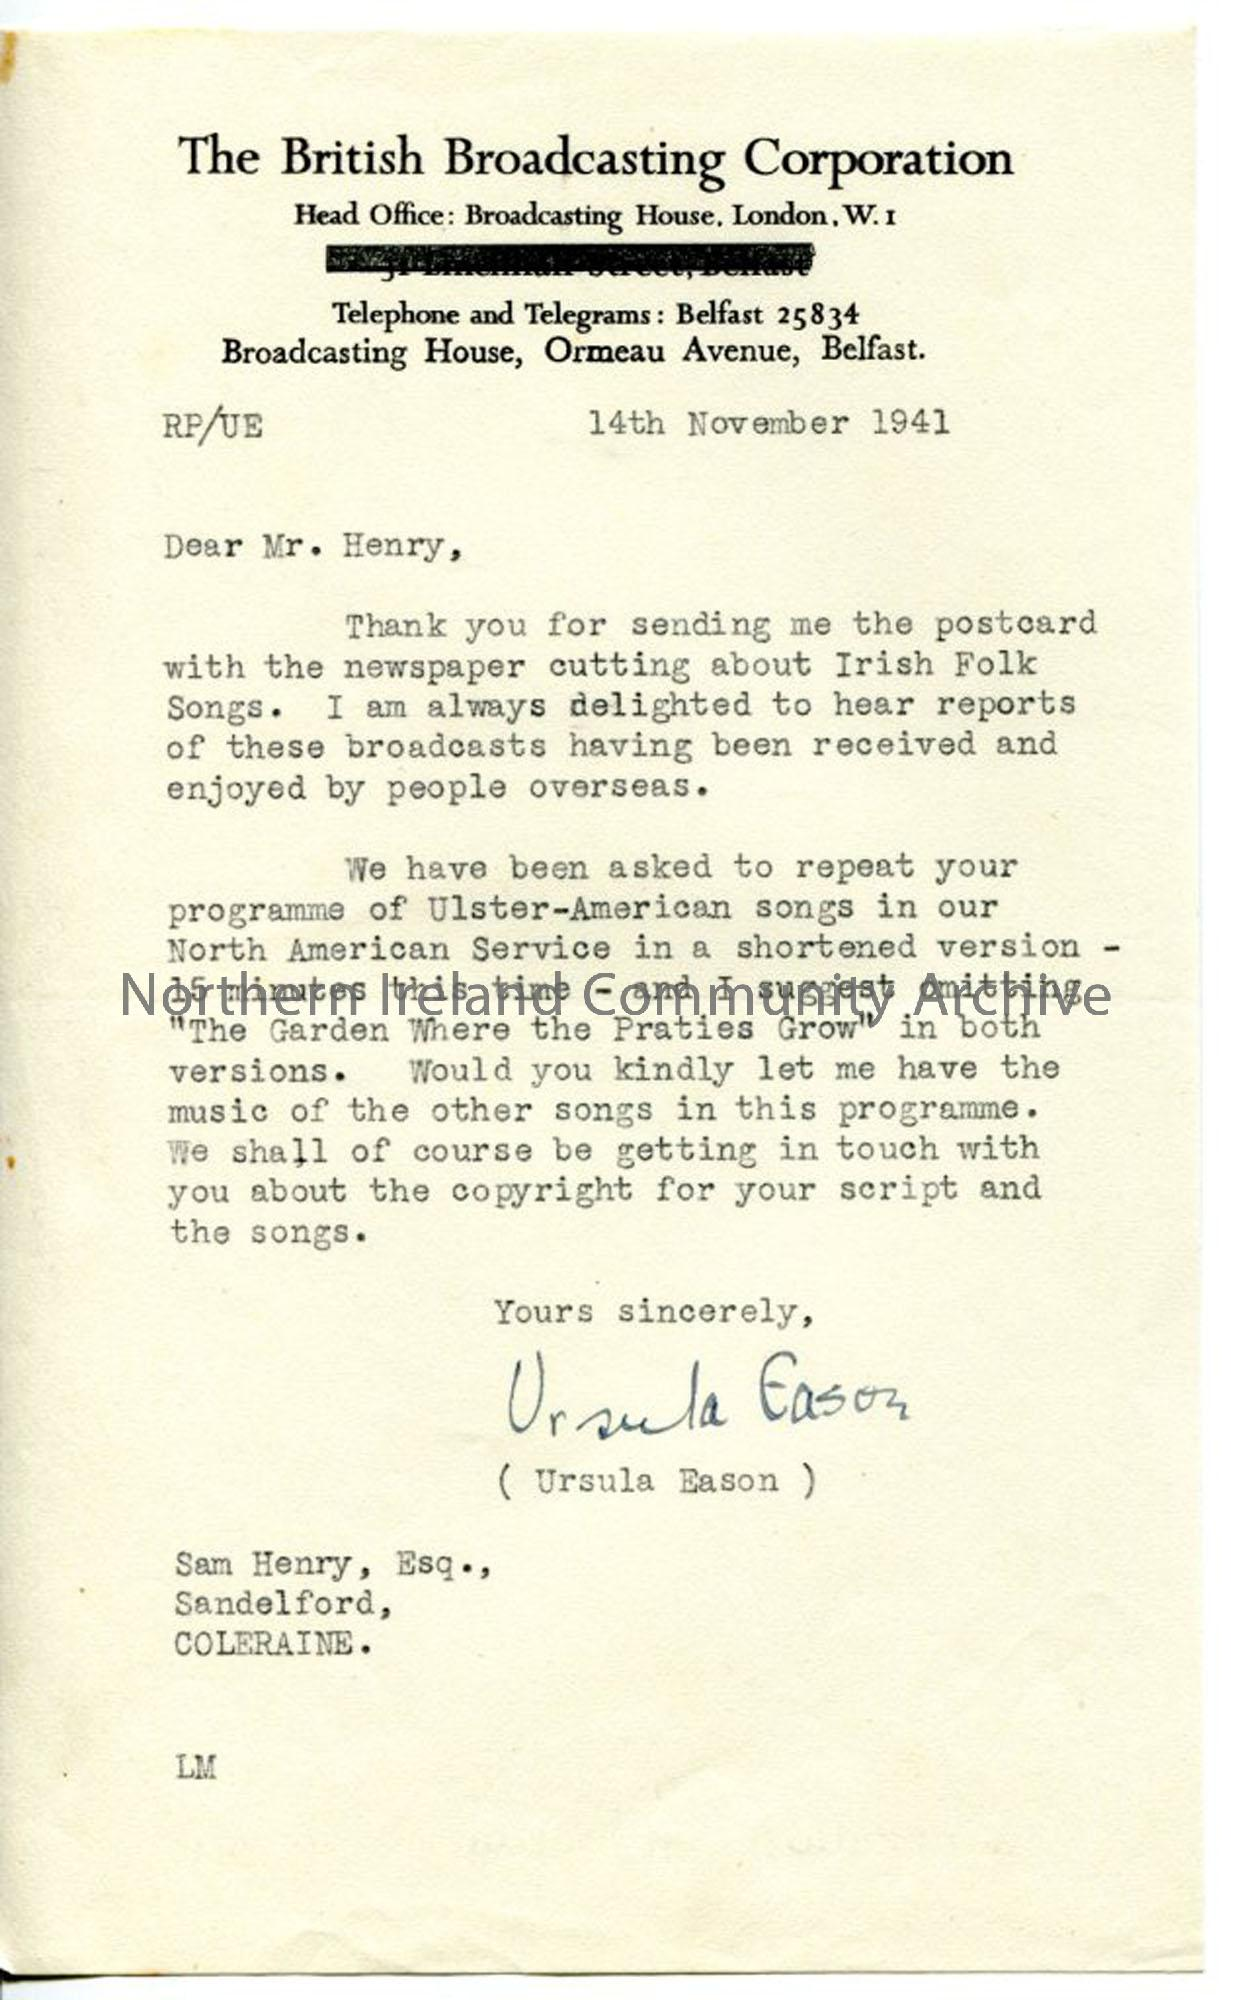 Letter from Ursula Eason, dated 14.11.1941